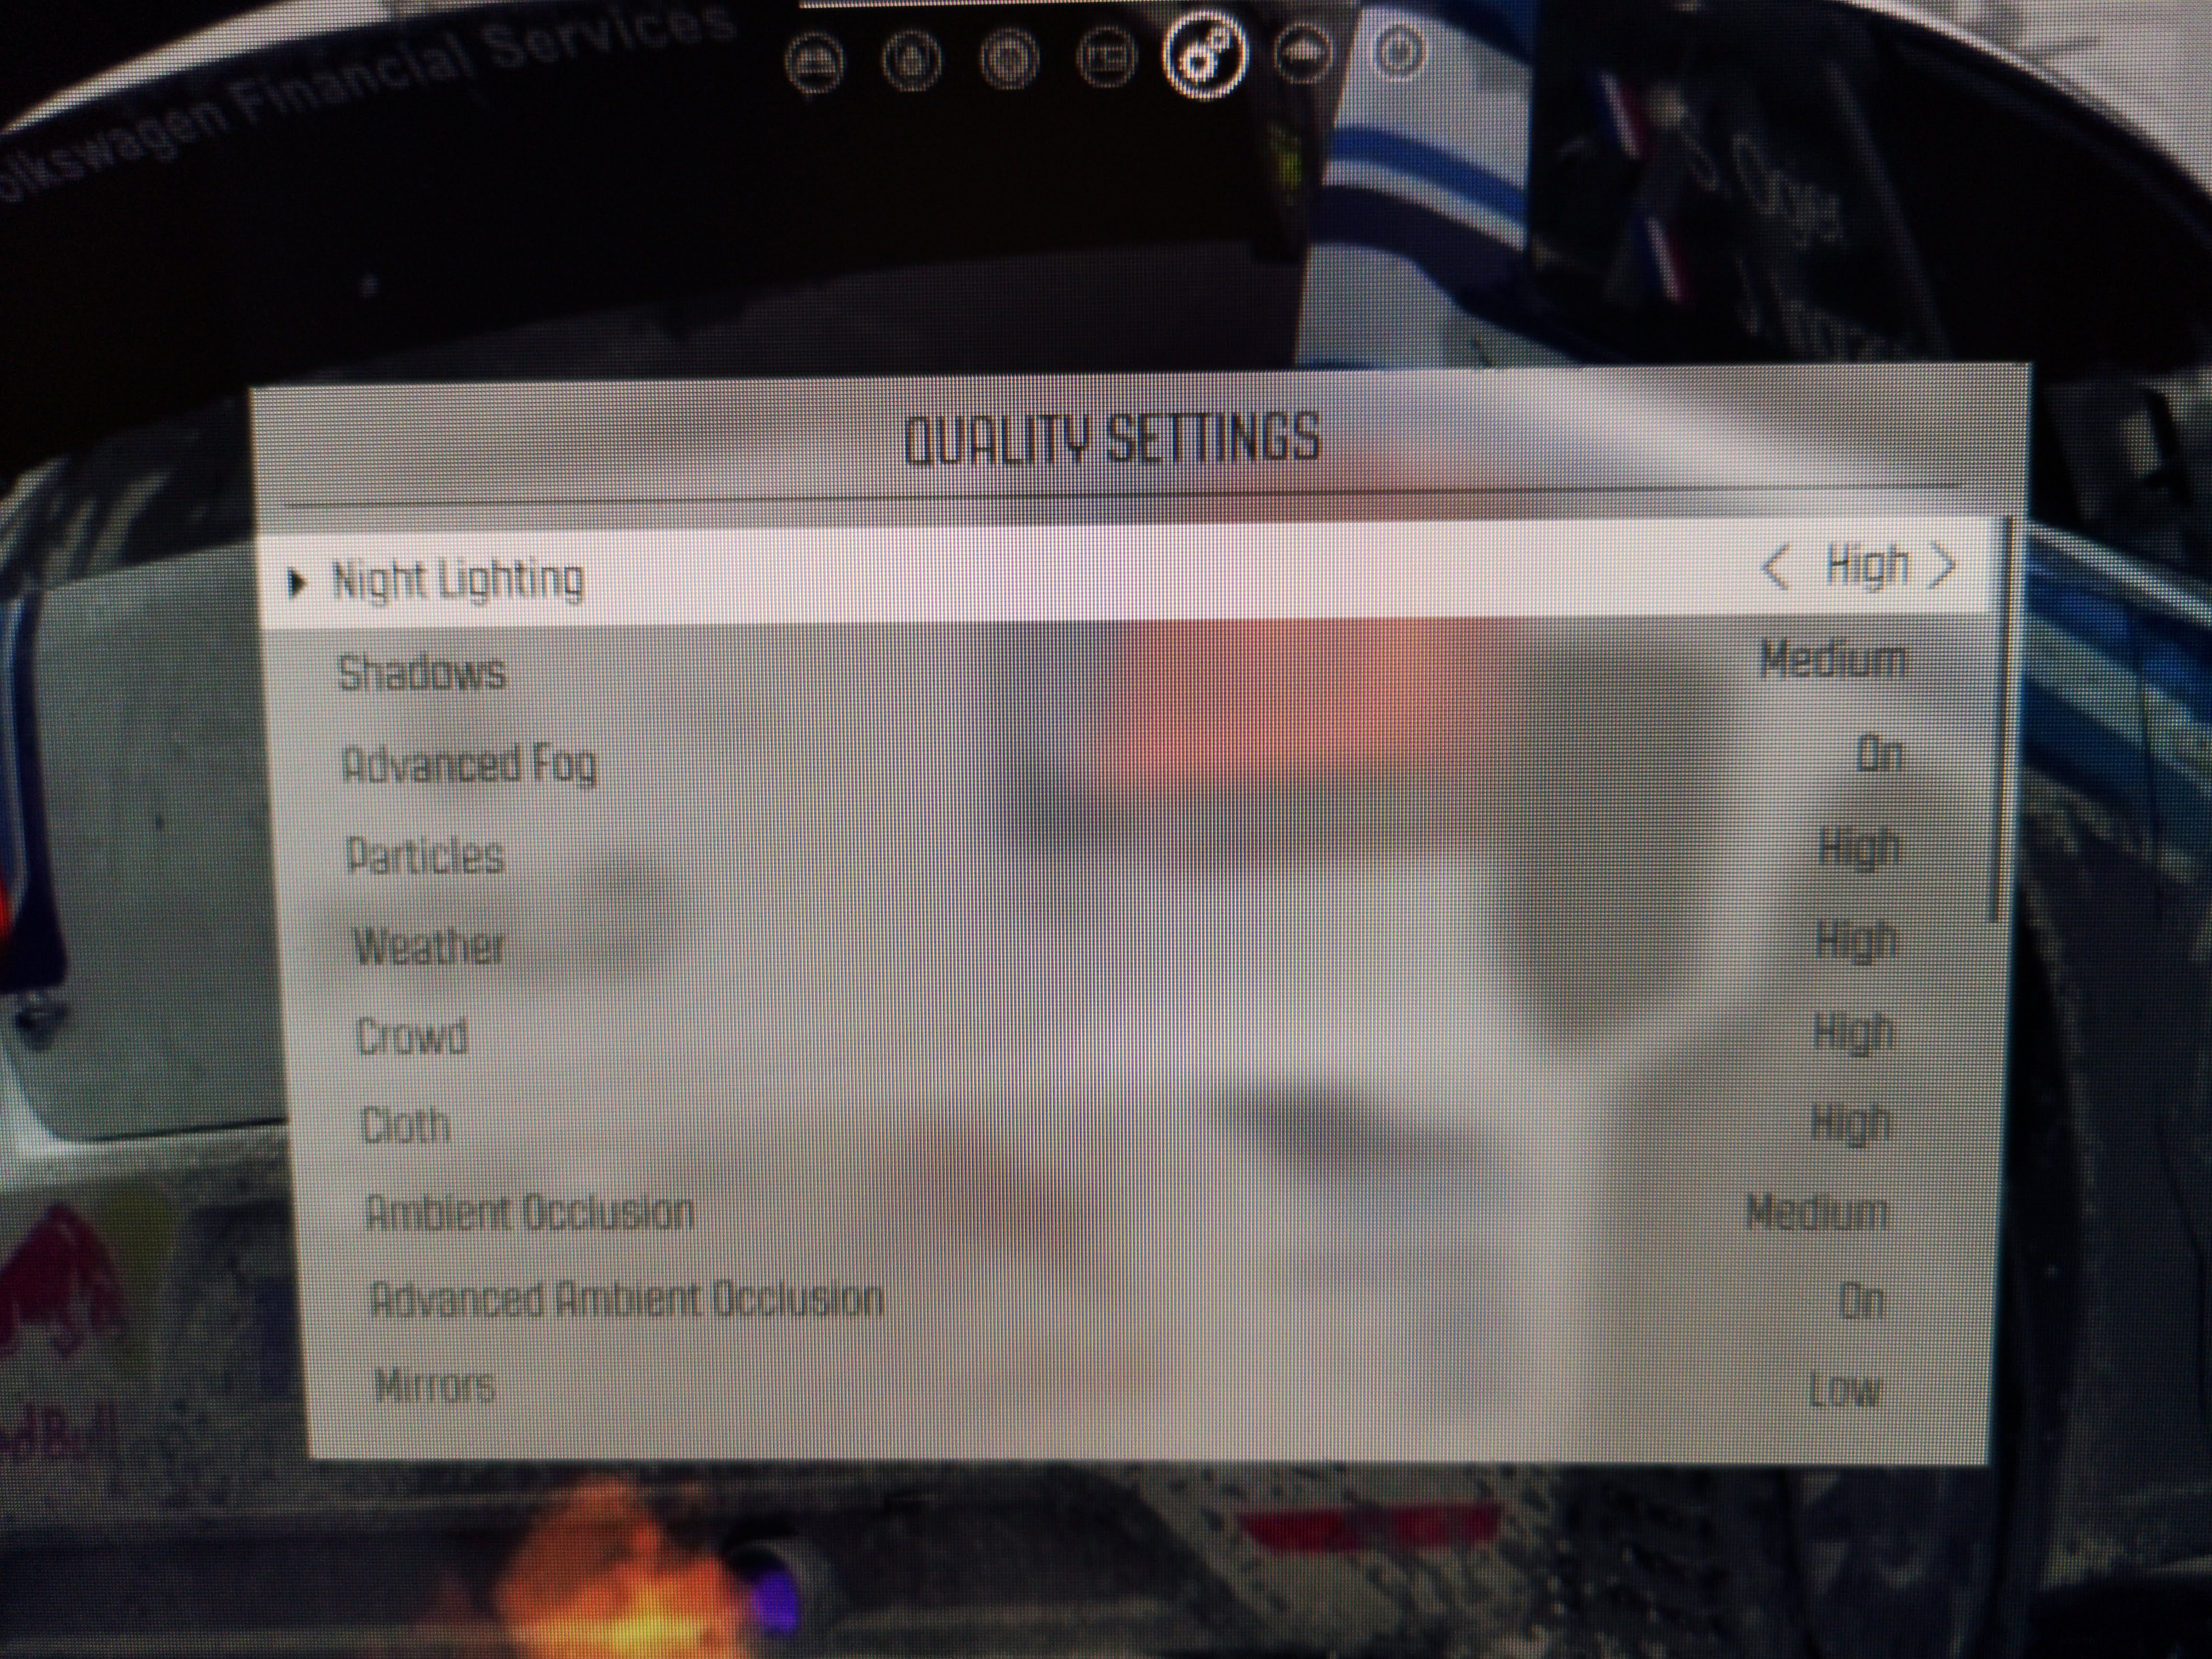 Dirt Rally Settings 5k+ (original thread) - Pimax 8K Series